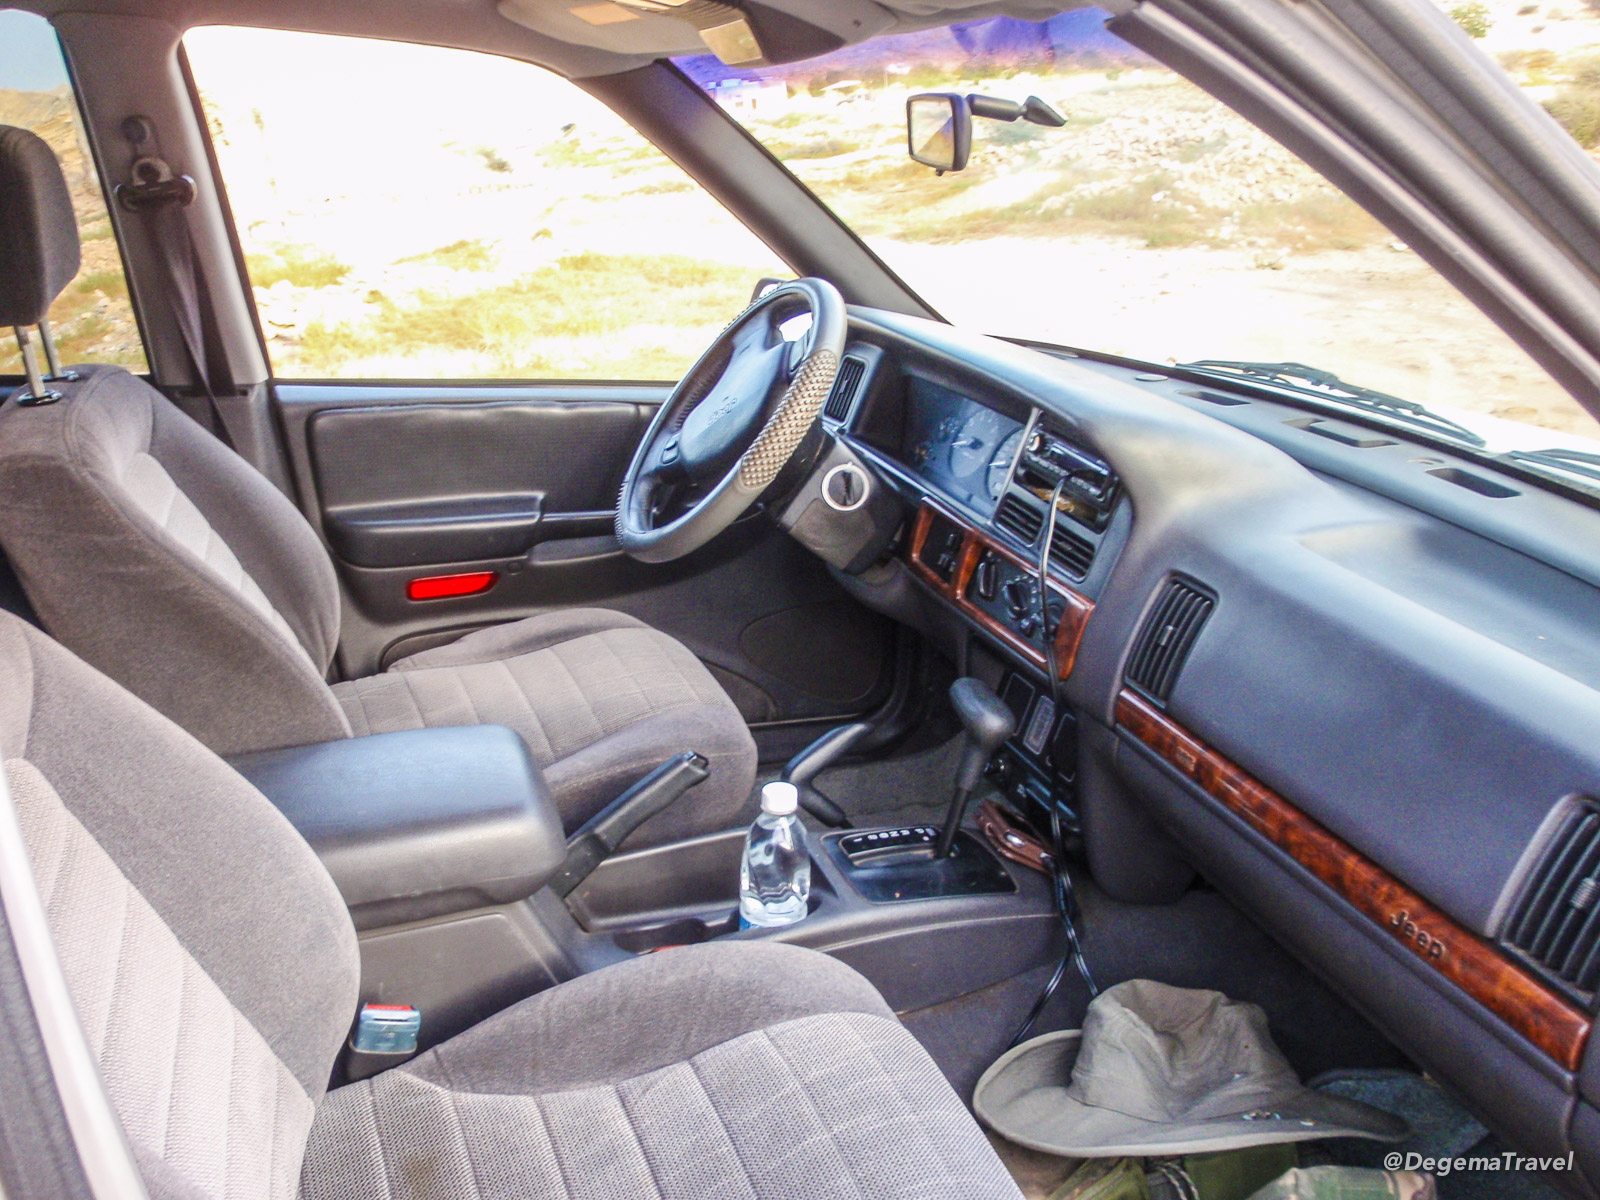 Inside a 1997 Jeep Grand Cherokee Laredo in Muscat, Oman